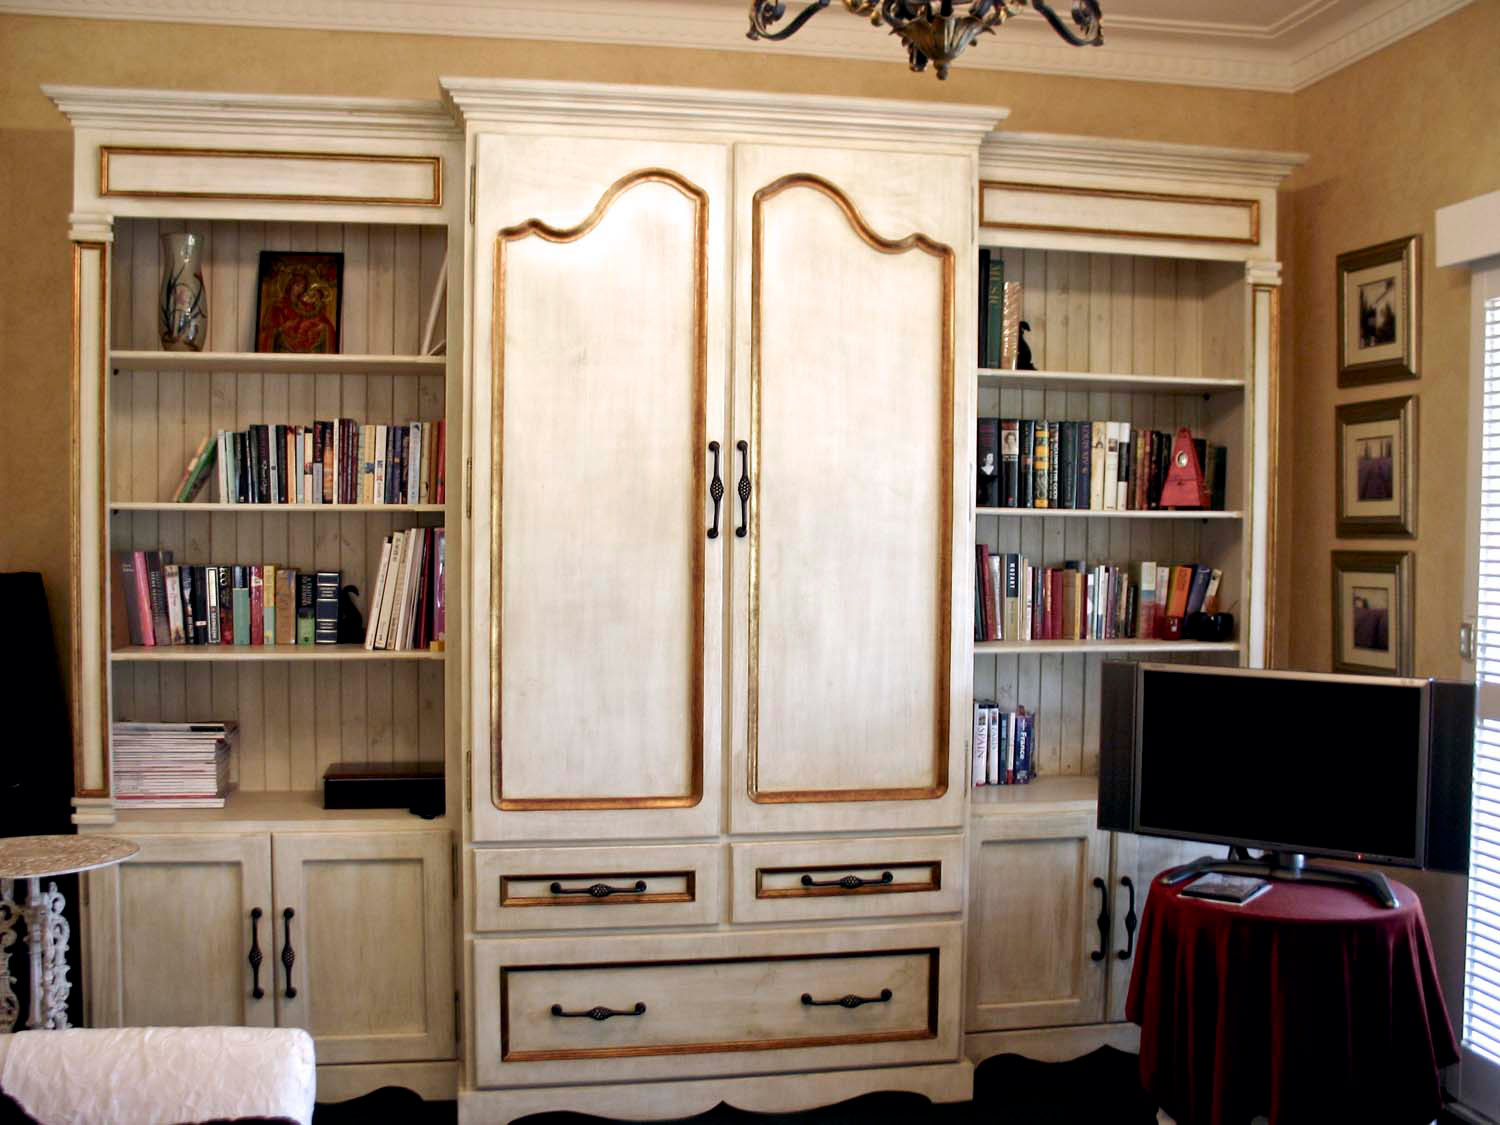 33 French classical Louis door design and interiors